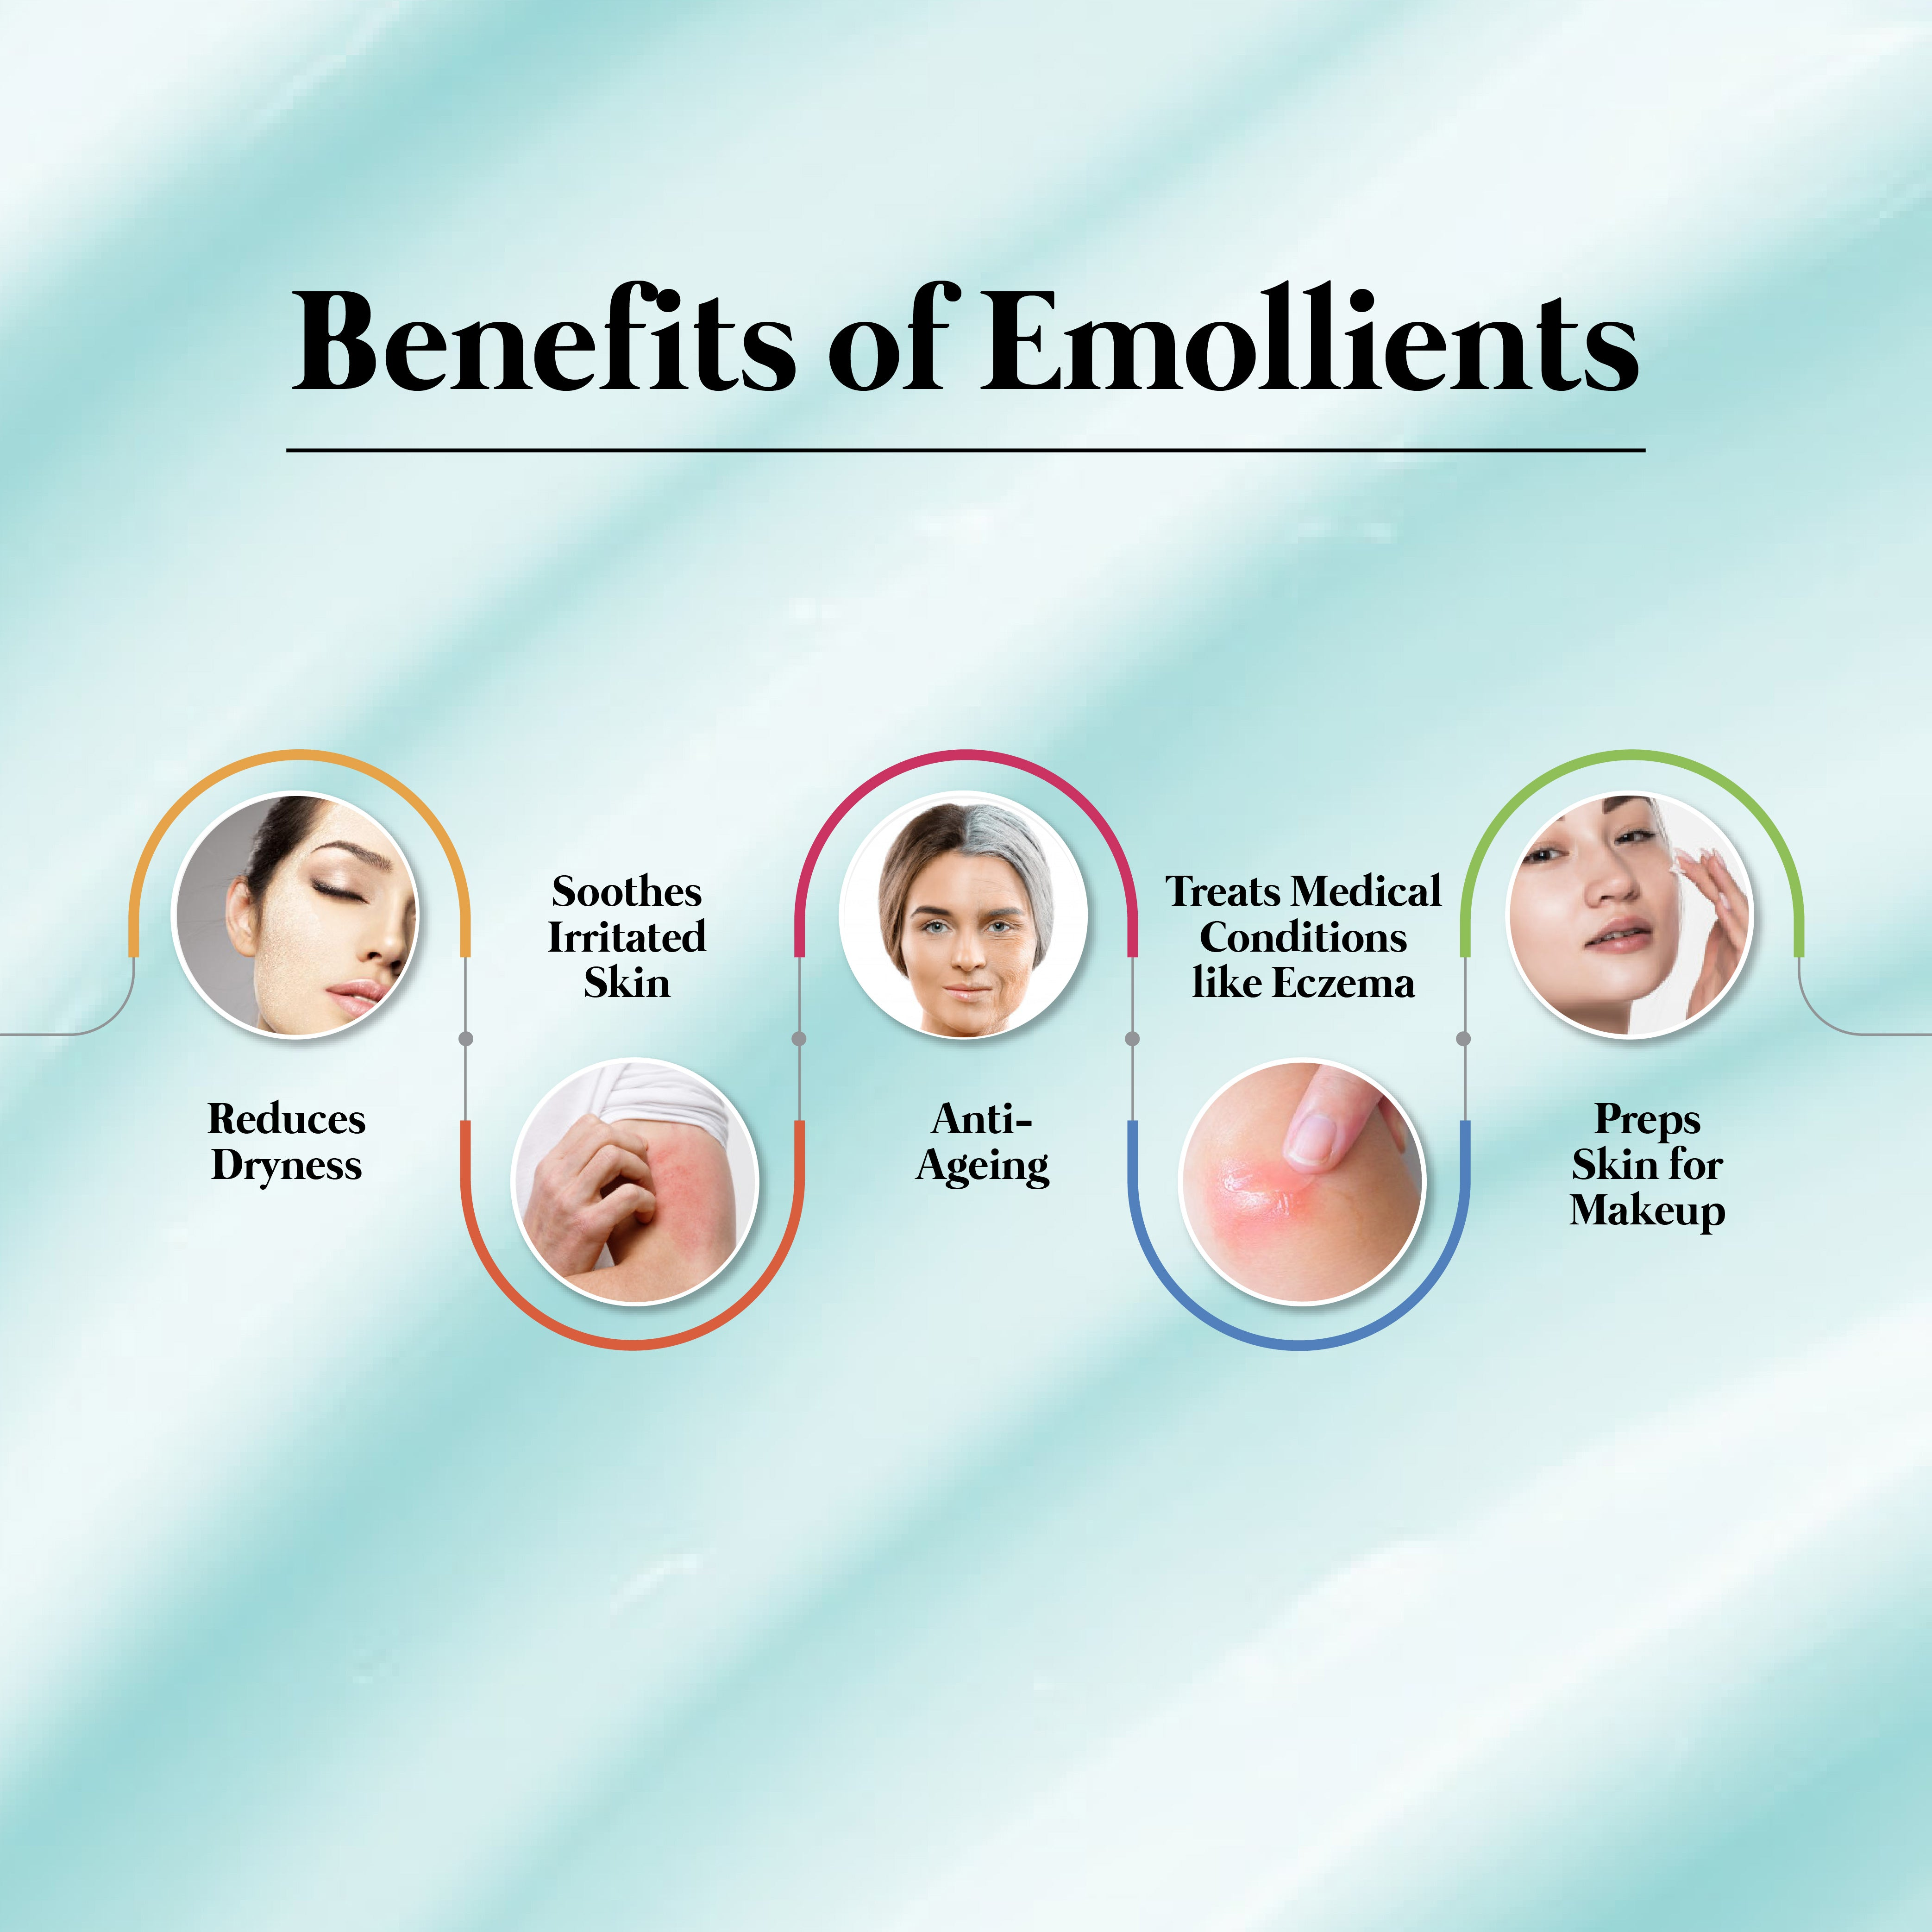 This is an image of Benefits of Emollients on www.sublimelife.in